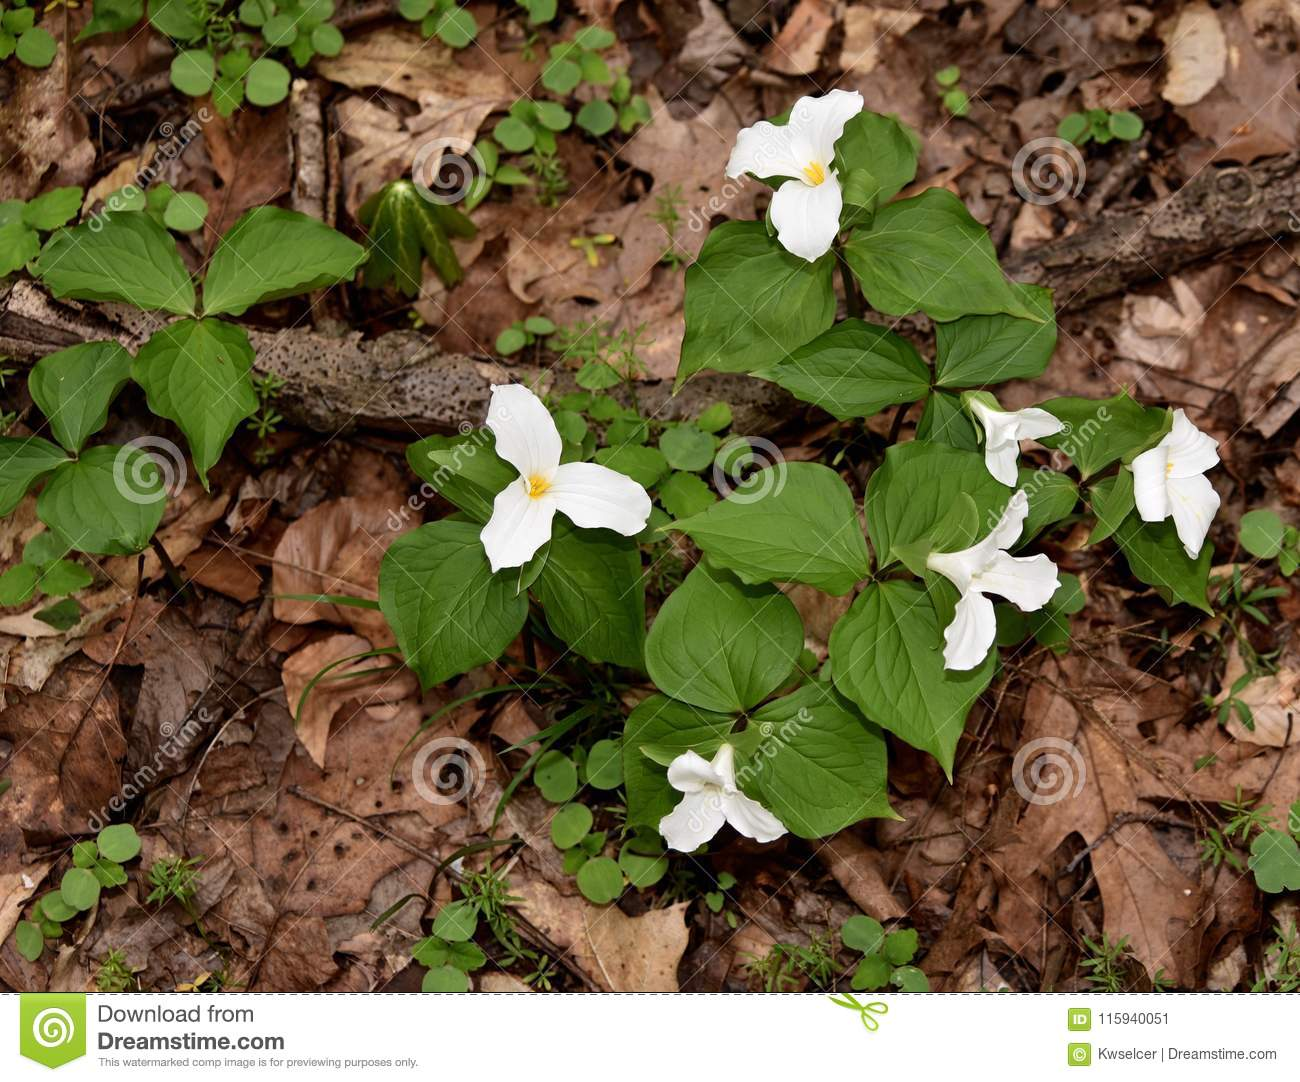 A Colony Of Large White Trillium Plants Emerging In A Spring